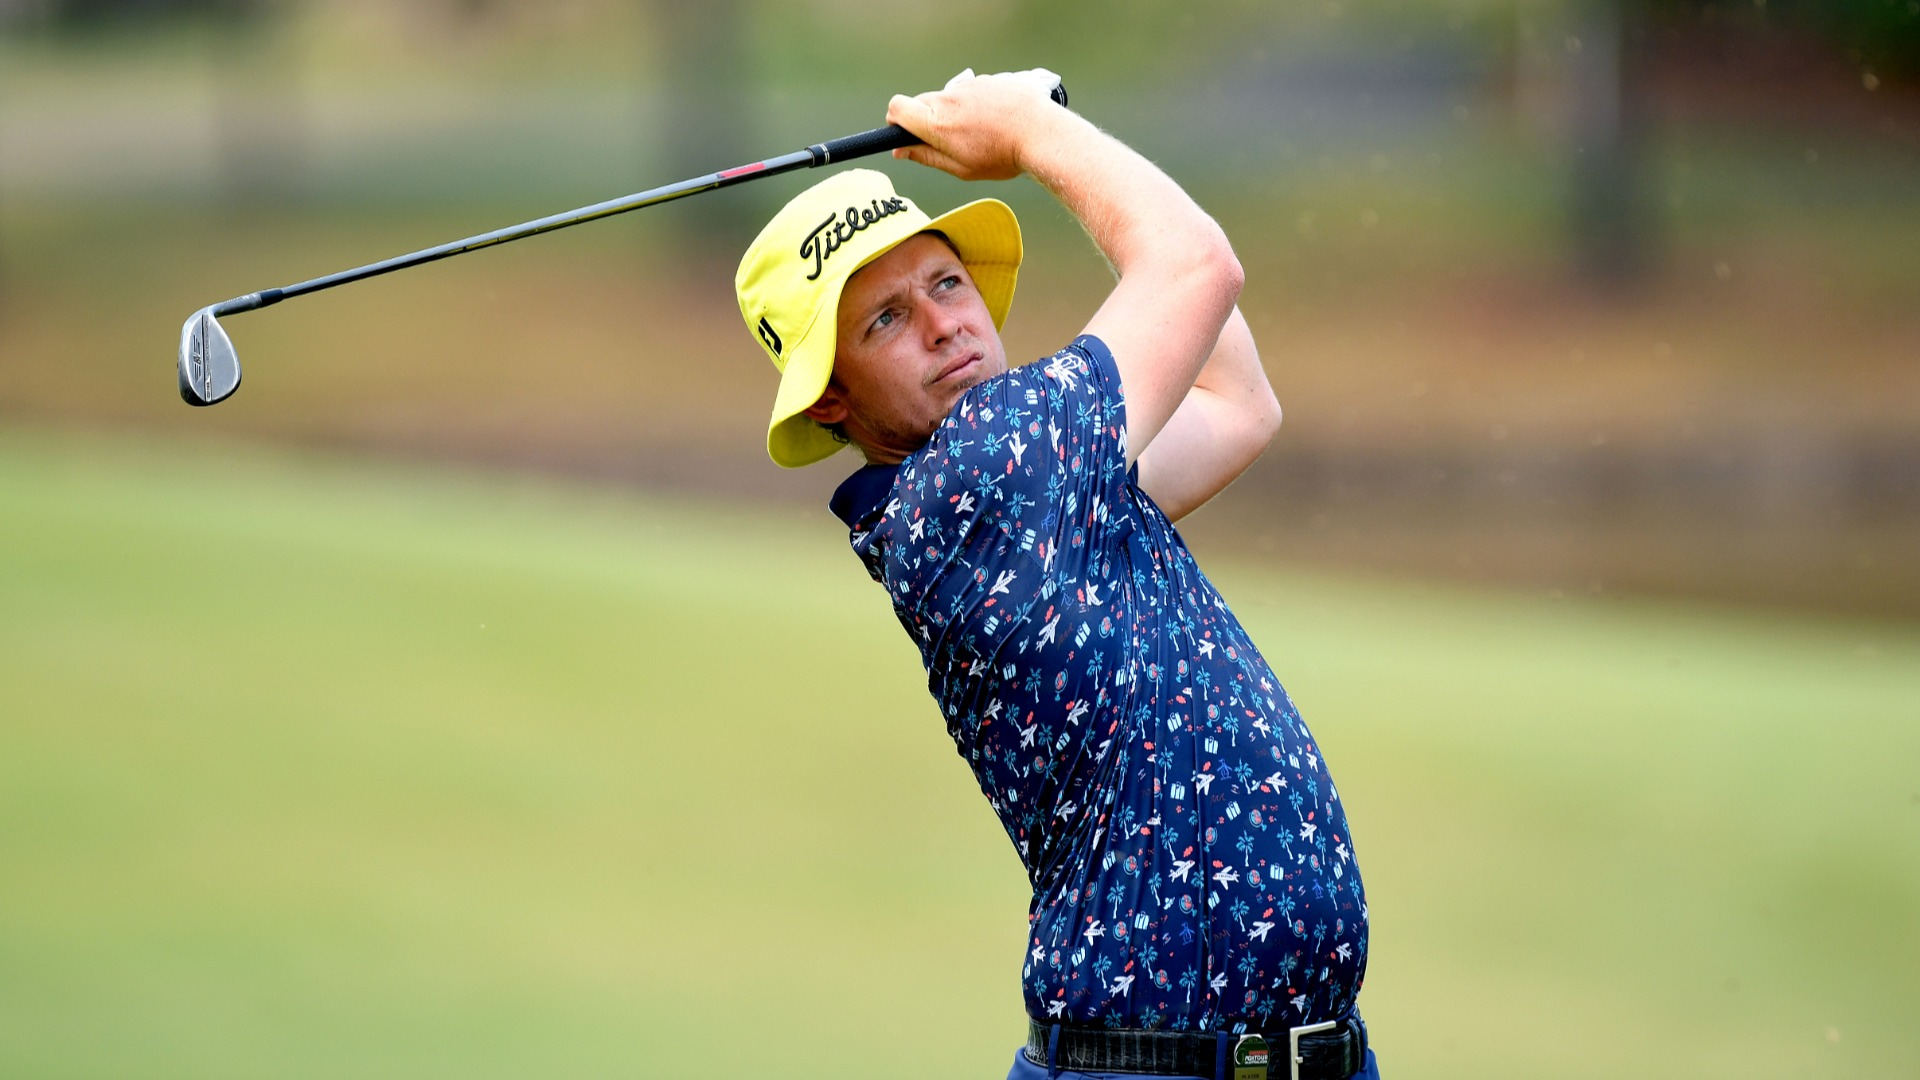 Nap and a swim inspire Cameron Smith in pursuit of Australian PGA history